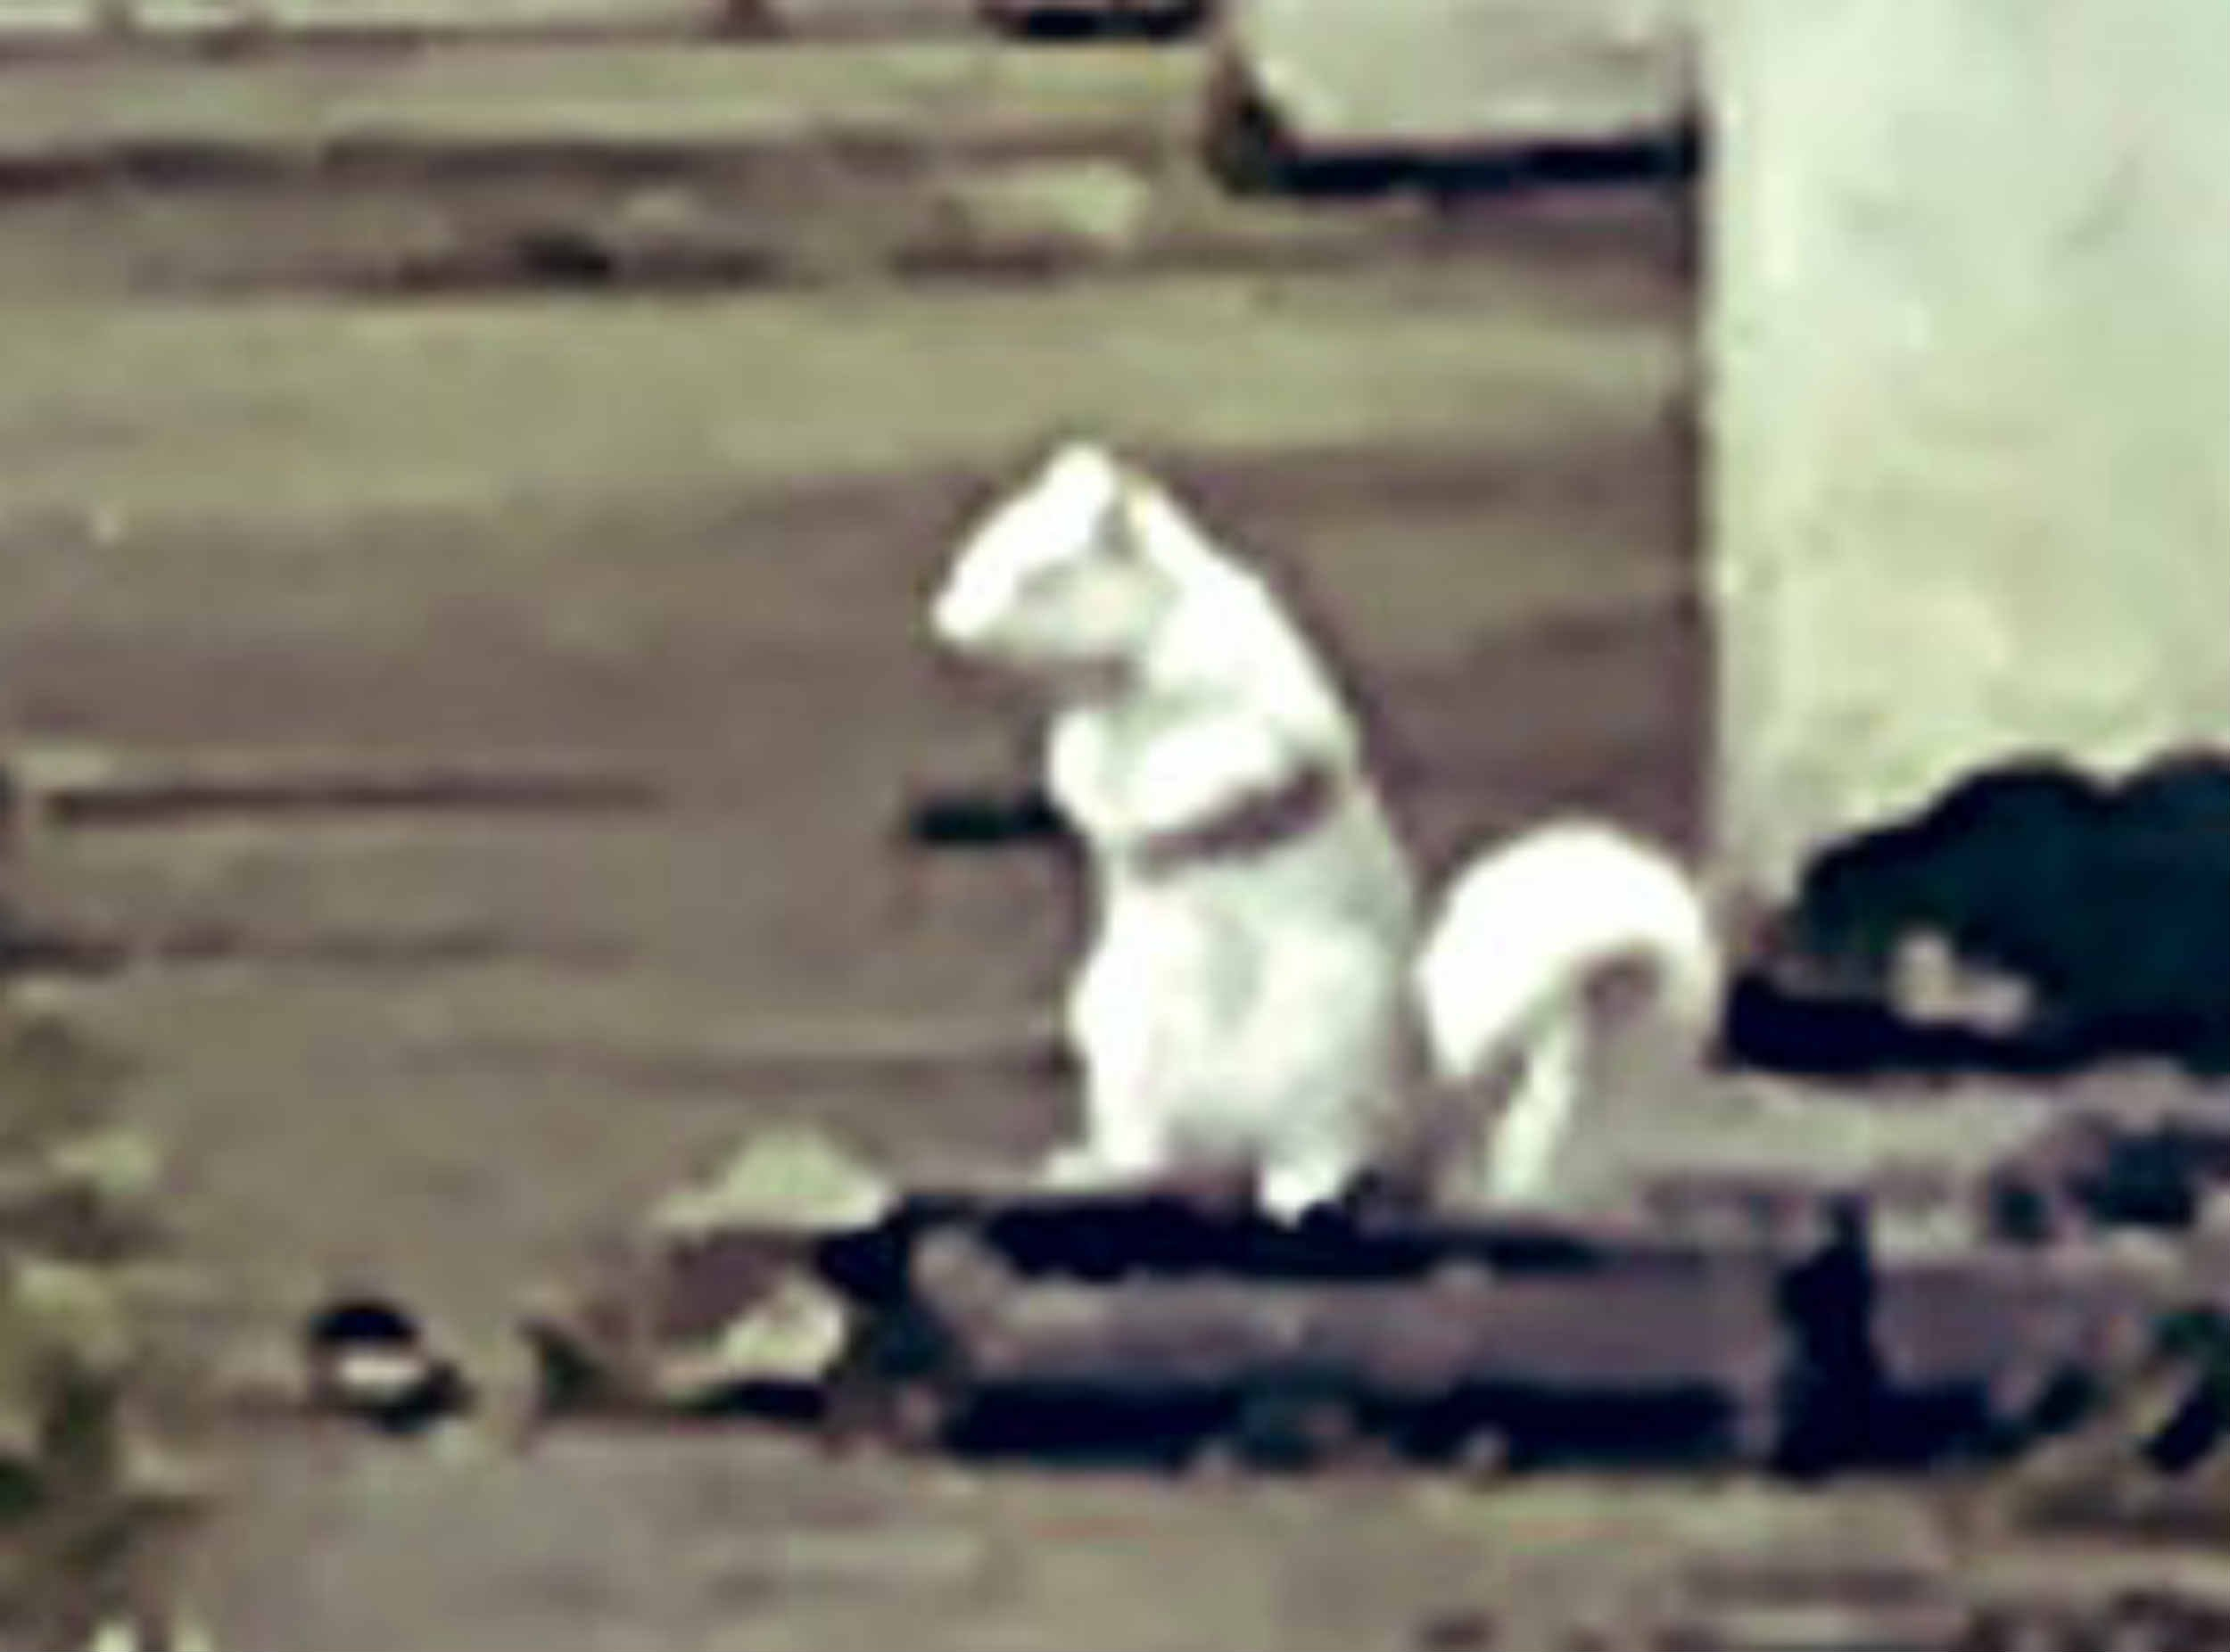 Super rare white albino squirrel spotted in UK city centre